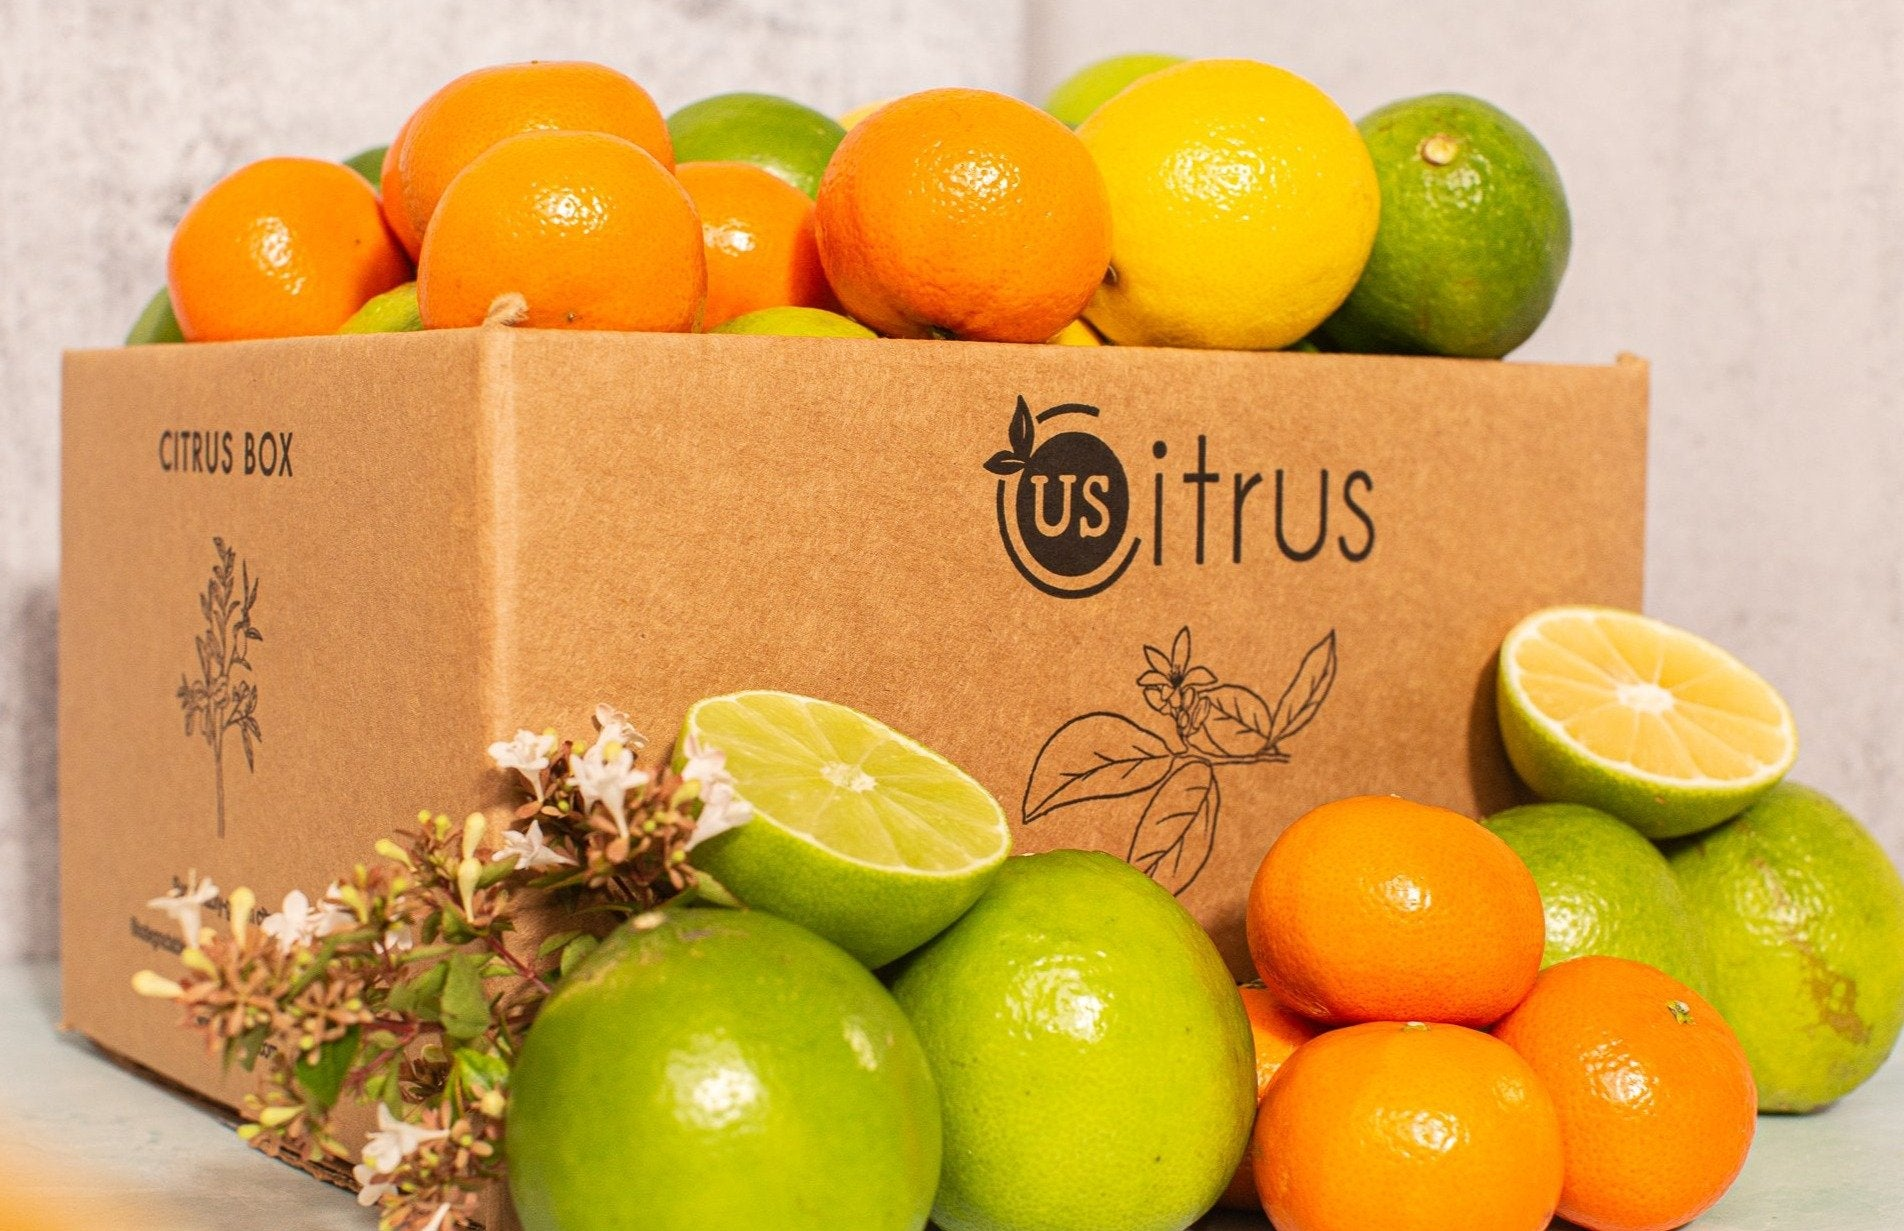 Fresh Citrus Fruit Box from US Citrus - Craft Citrus Club Citrus Fruit Subscription Boxes